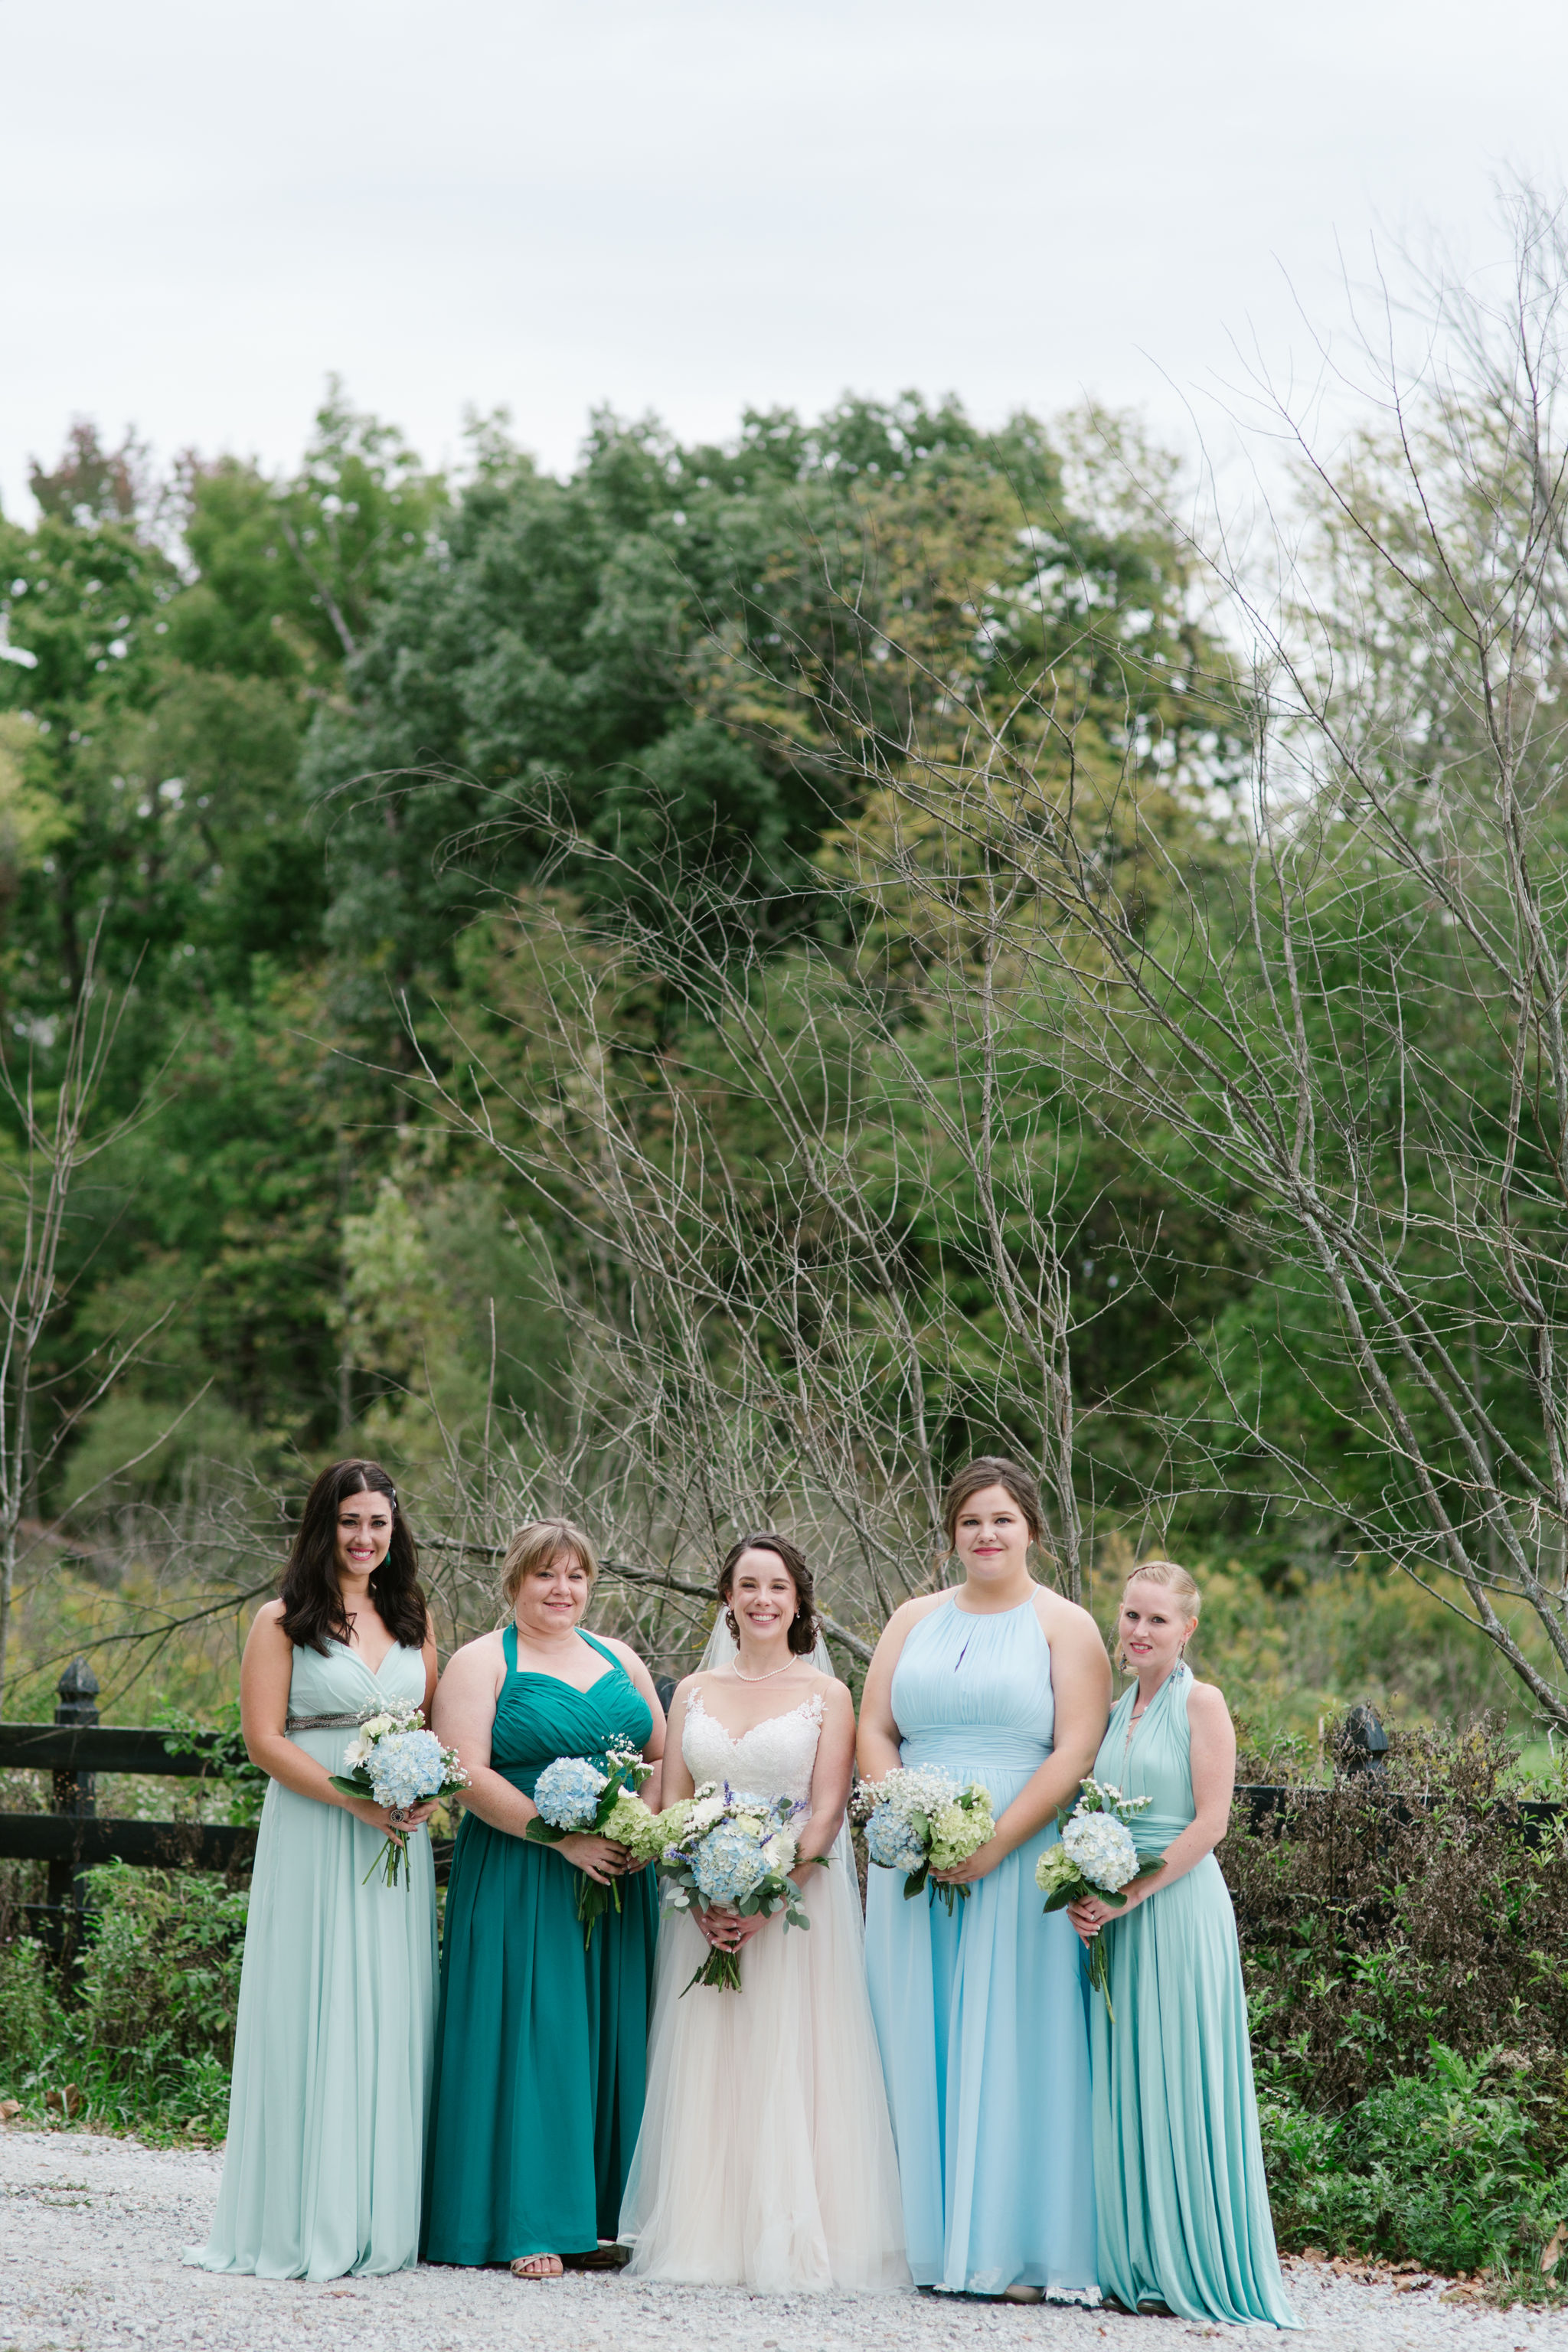 Kellsey&JasonWedding(Final)-137.jpg